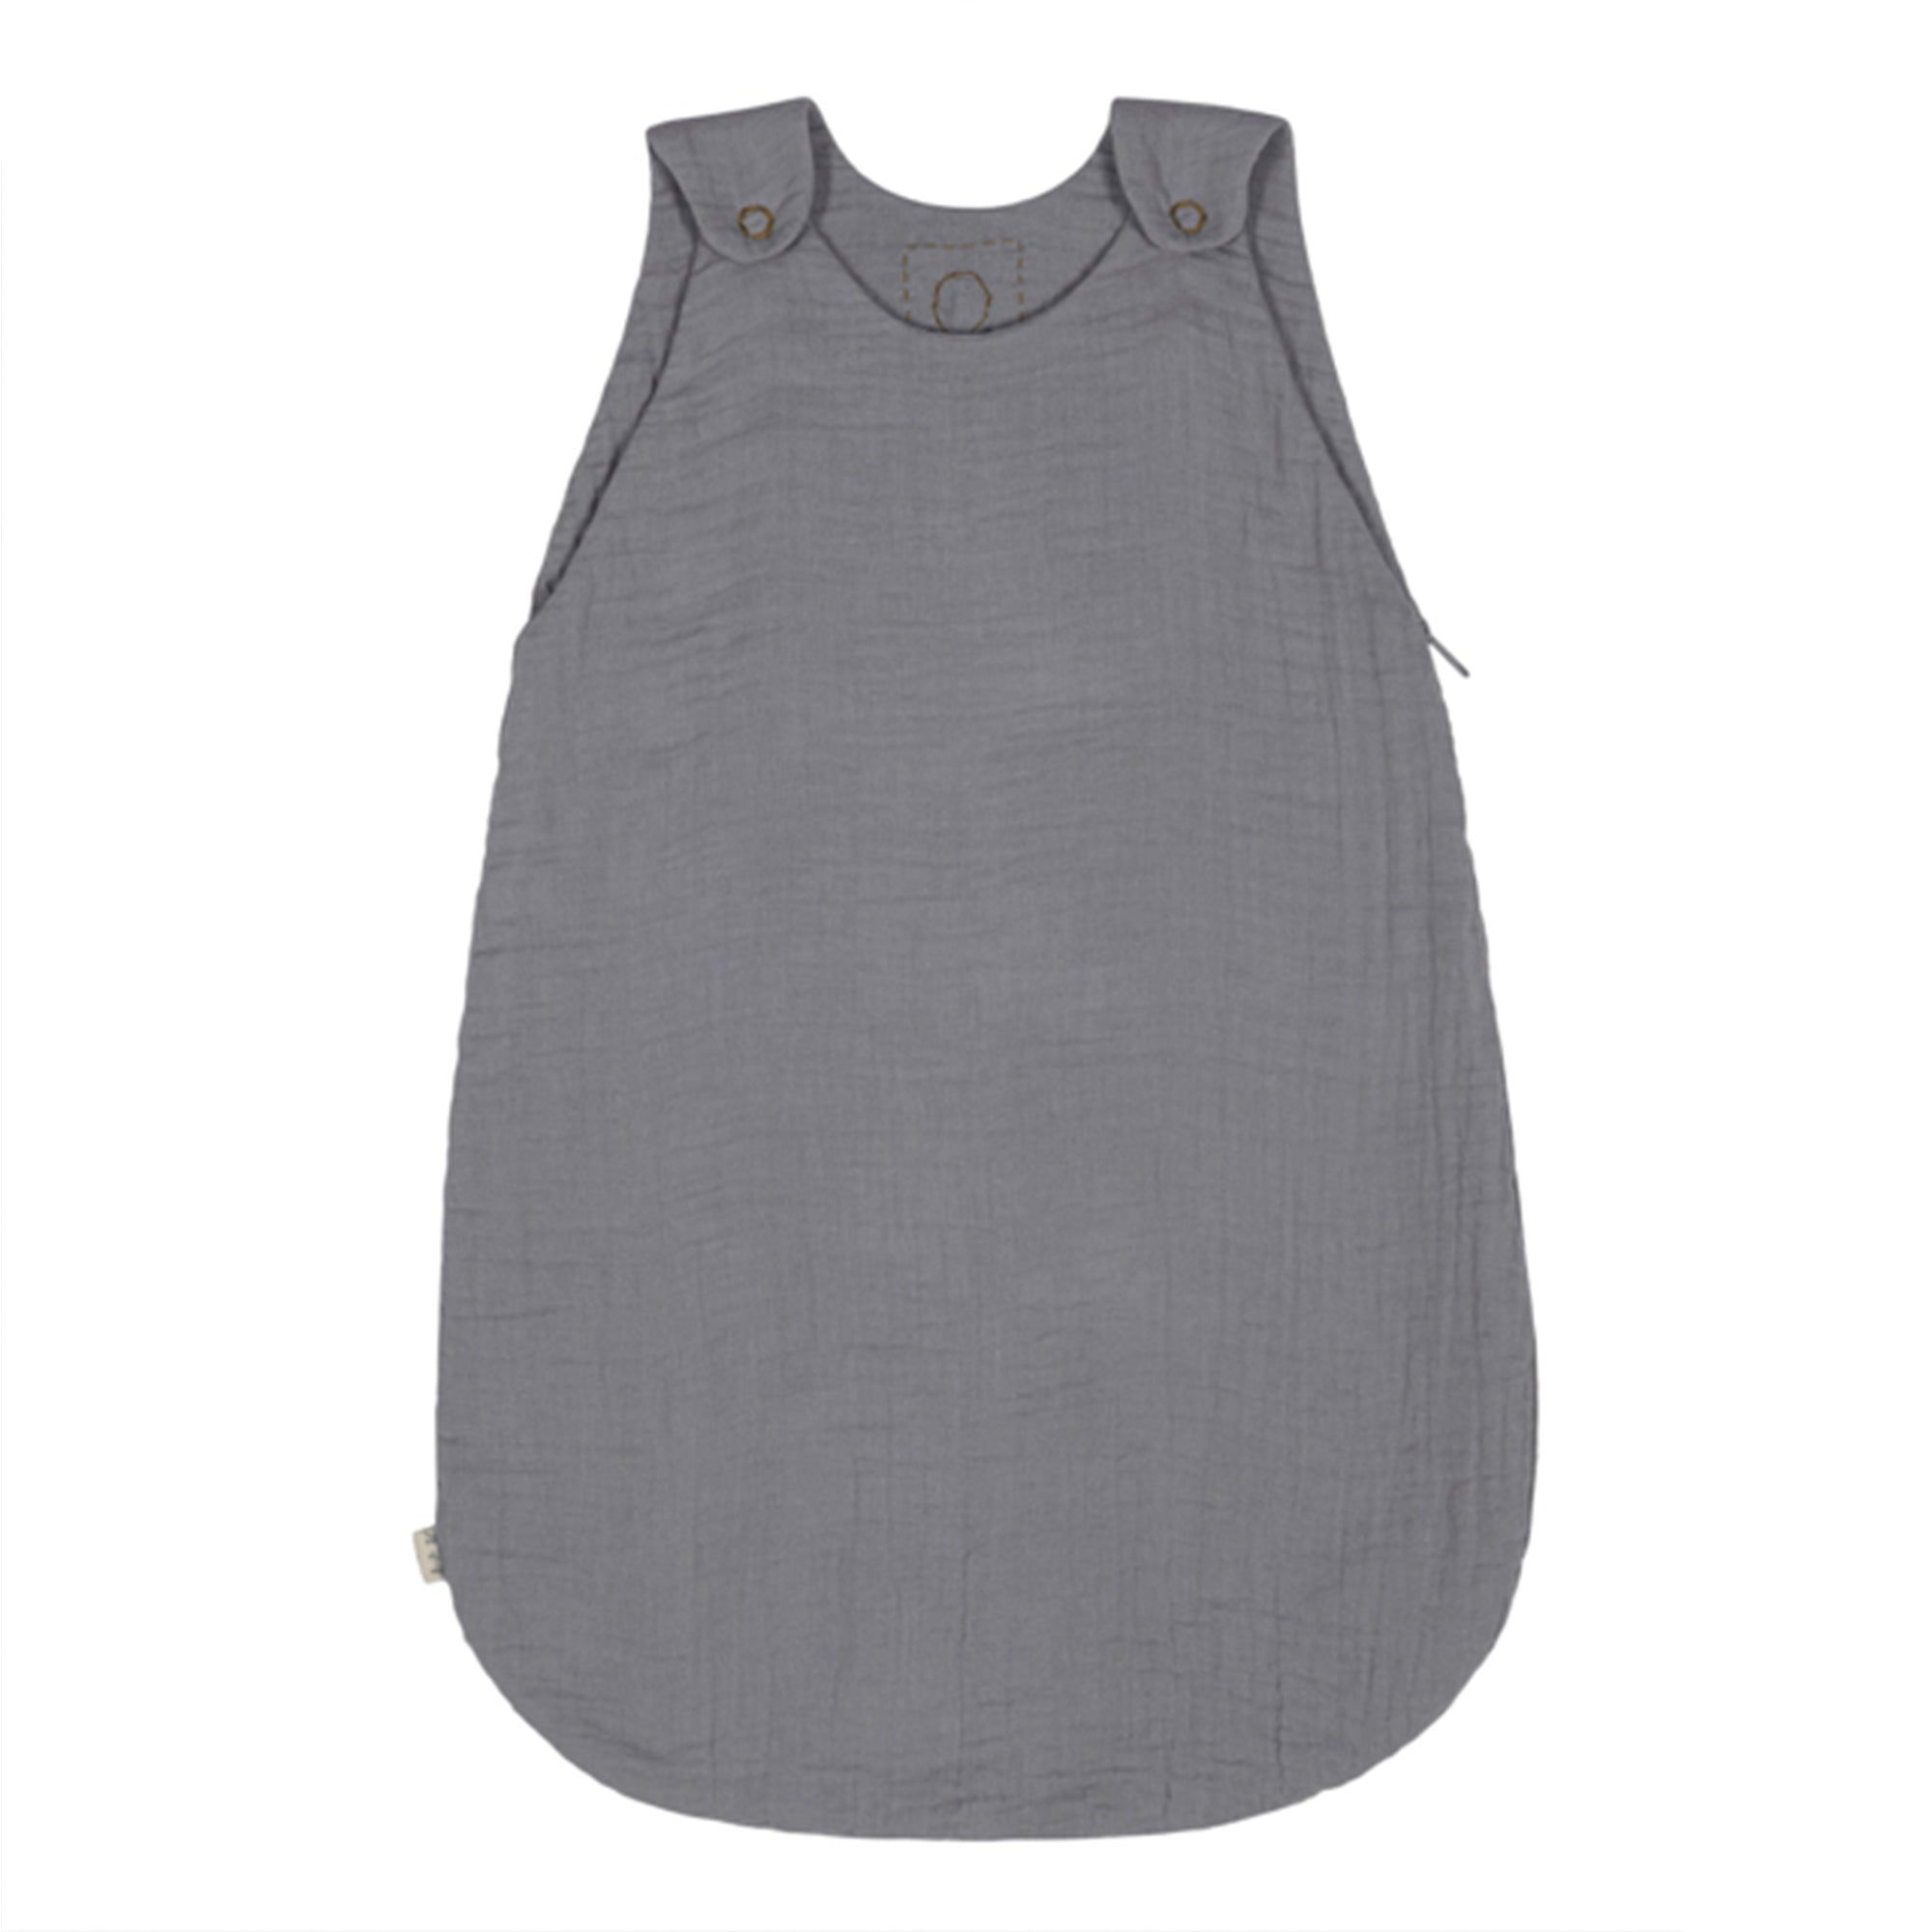 Numero 74 Summer Sleeping Bag in Stone Grey - Scandi Minimal